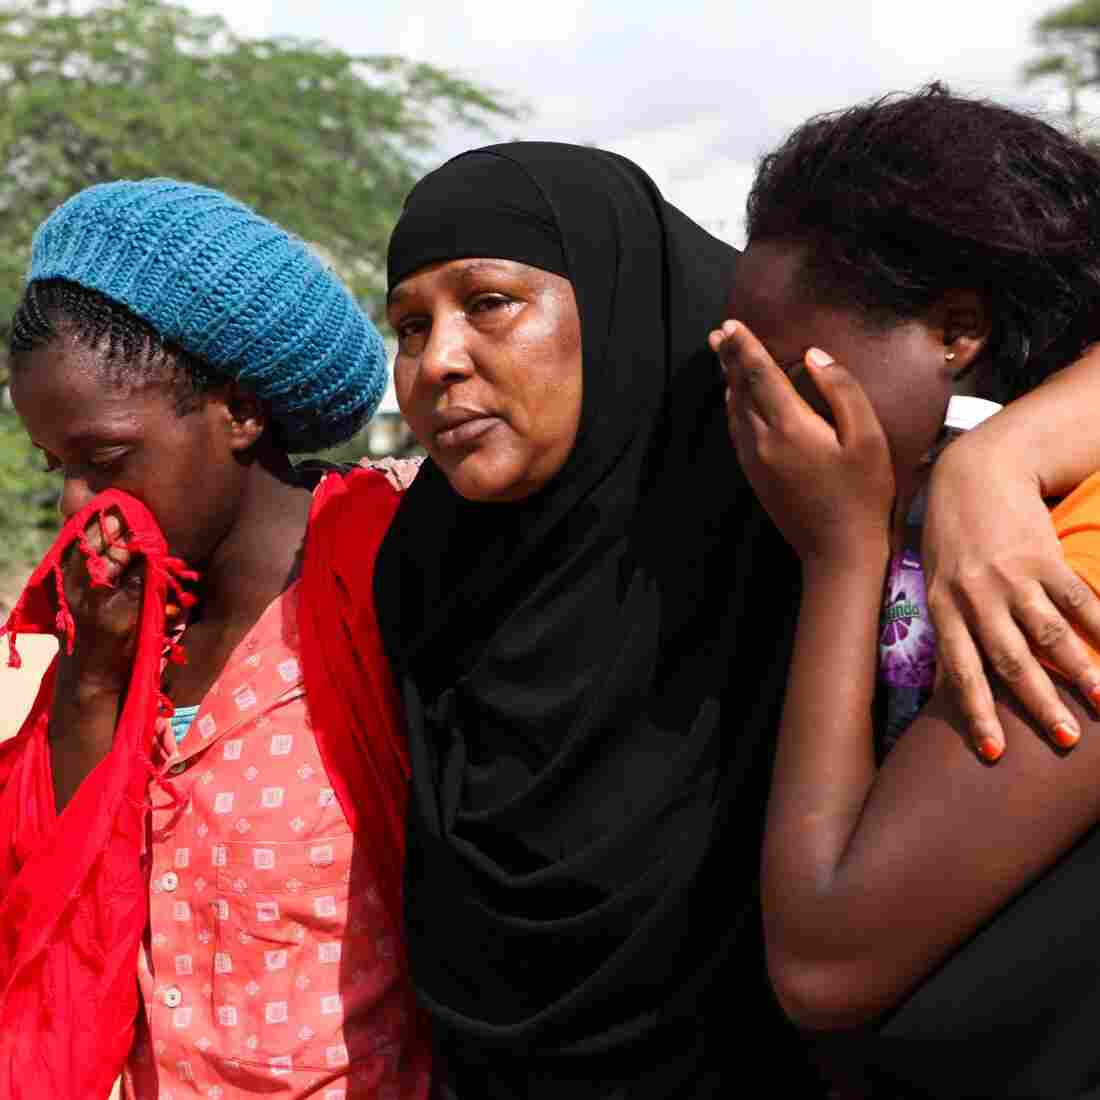 Kenya Copes With Deadliest Attack Since 1998 Embassy Bombing